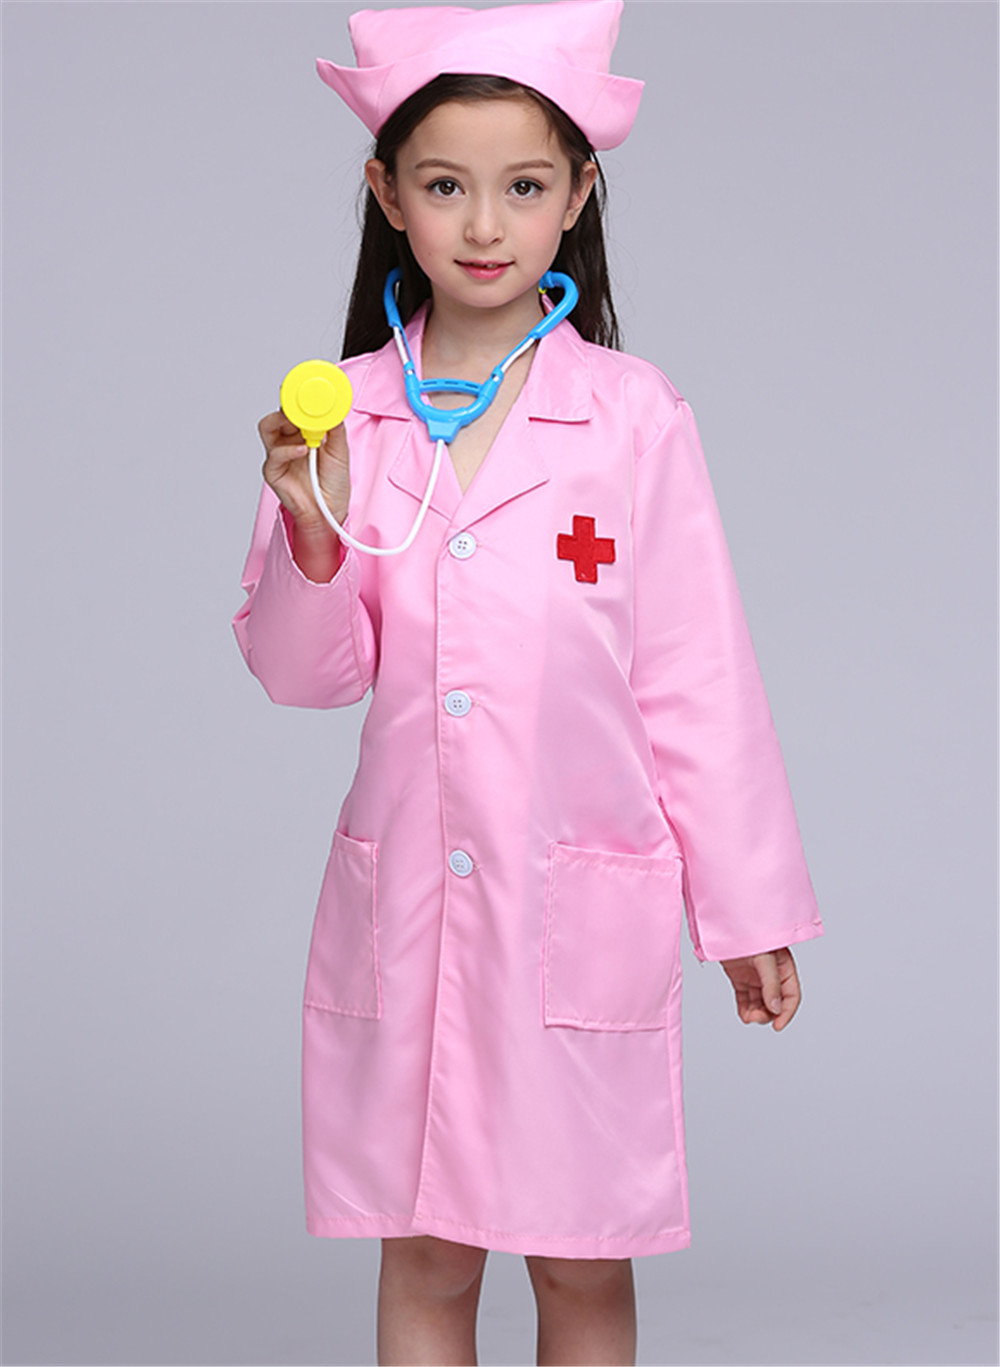 baby girls doctor found - HD 1000×1367